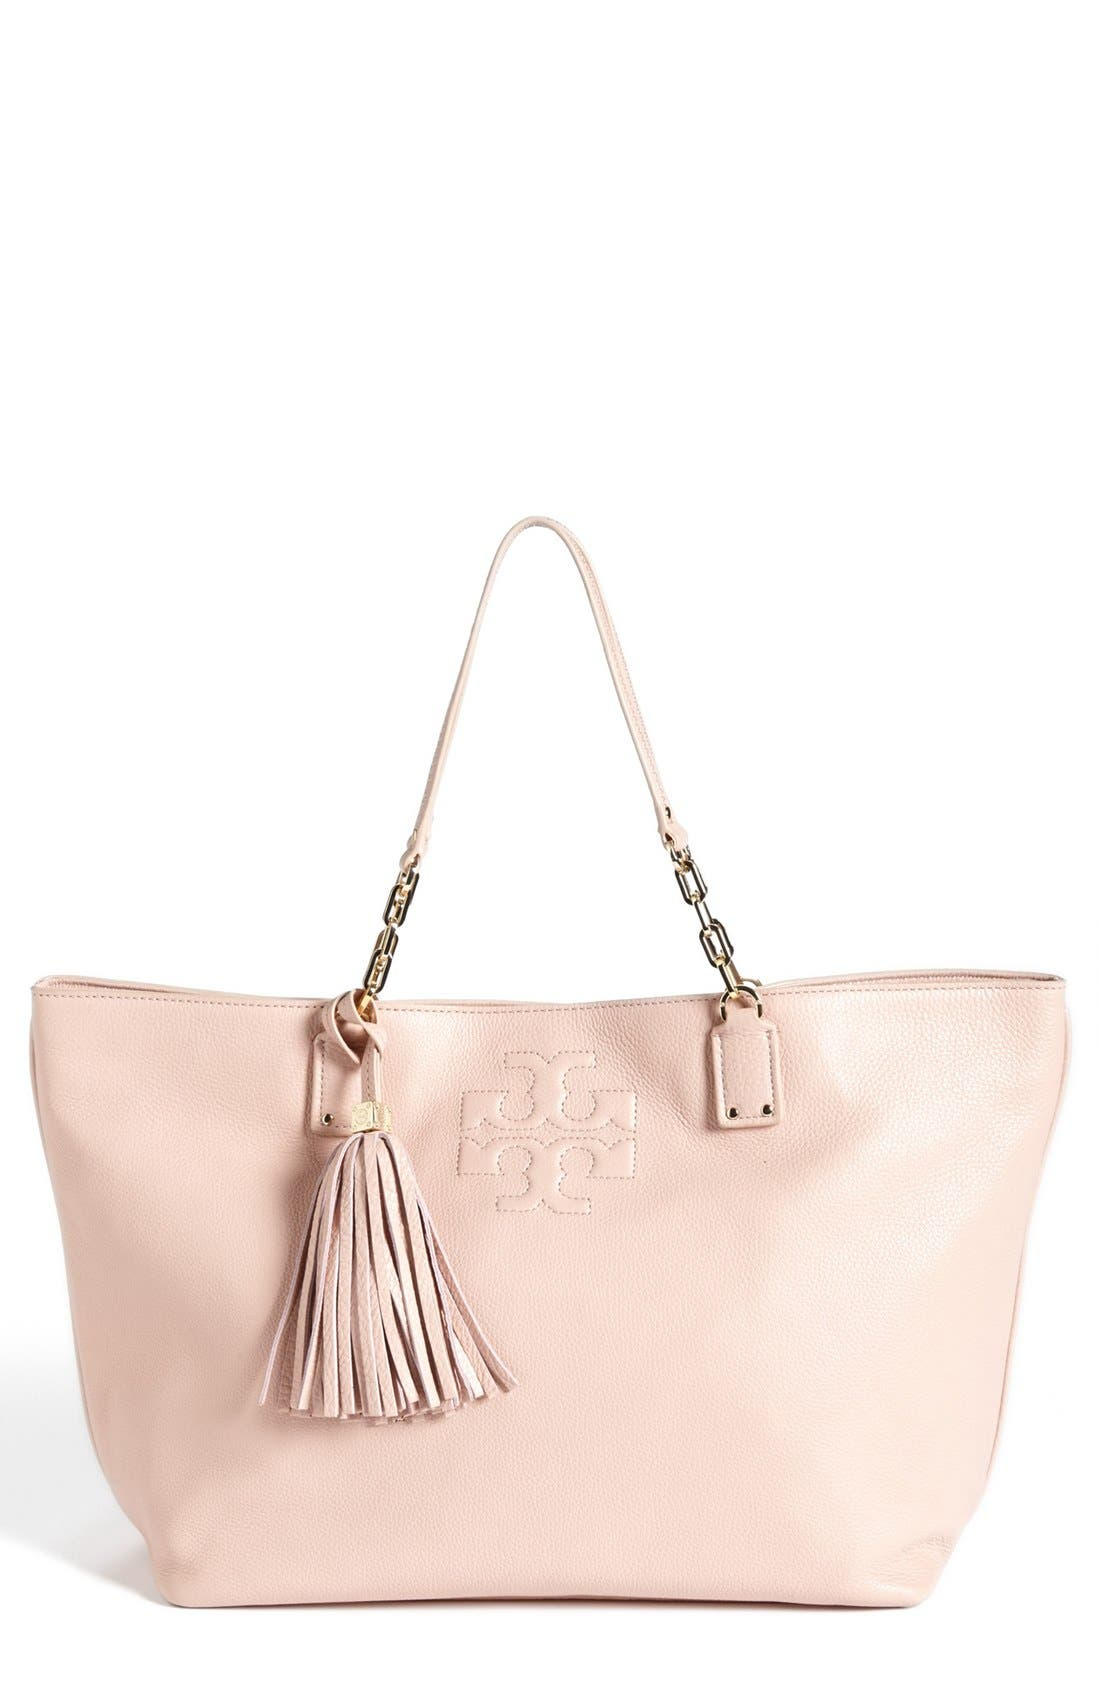 Alternate Image 1 Selected - Tory Burch 'Thea' Tote, Large